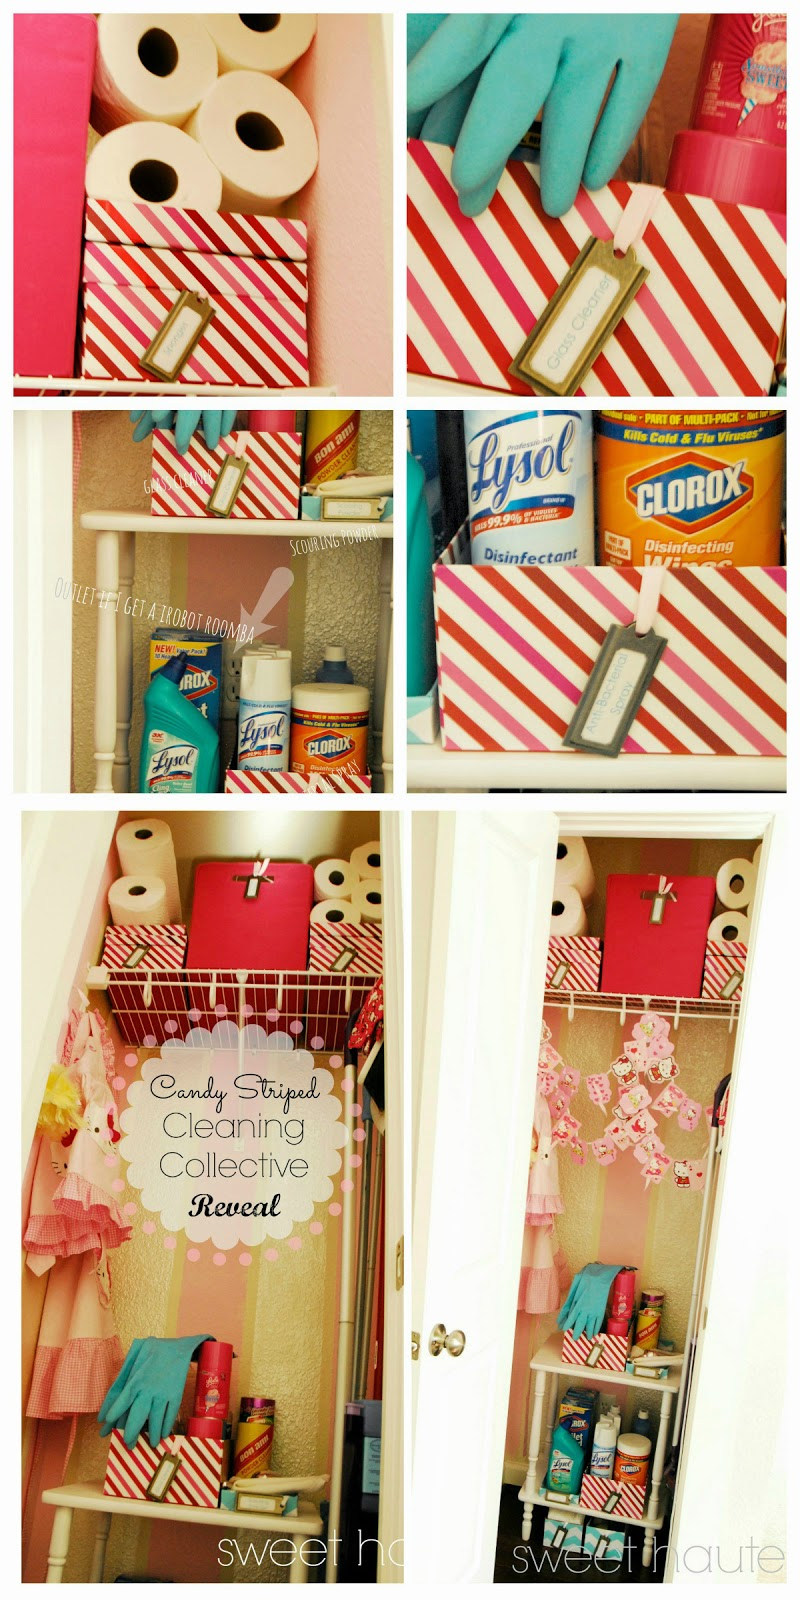 http://sweethaute.blogspot.com/2014/04/cleaning-collective-organized-and-pink.html